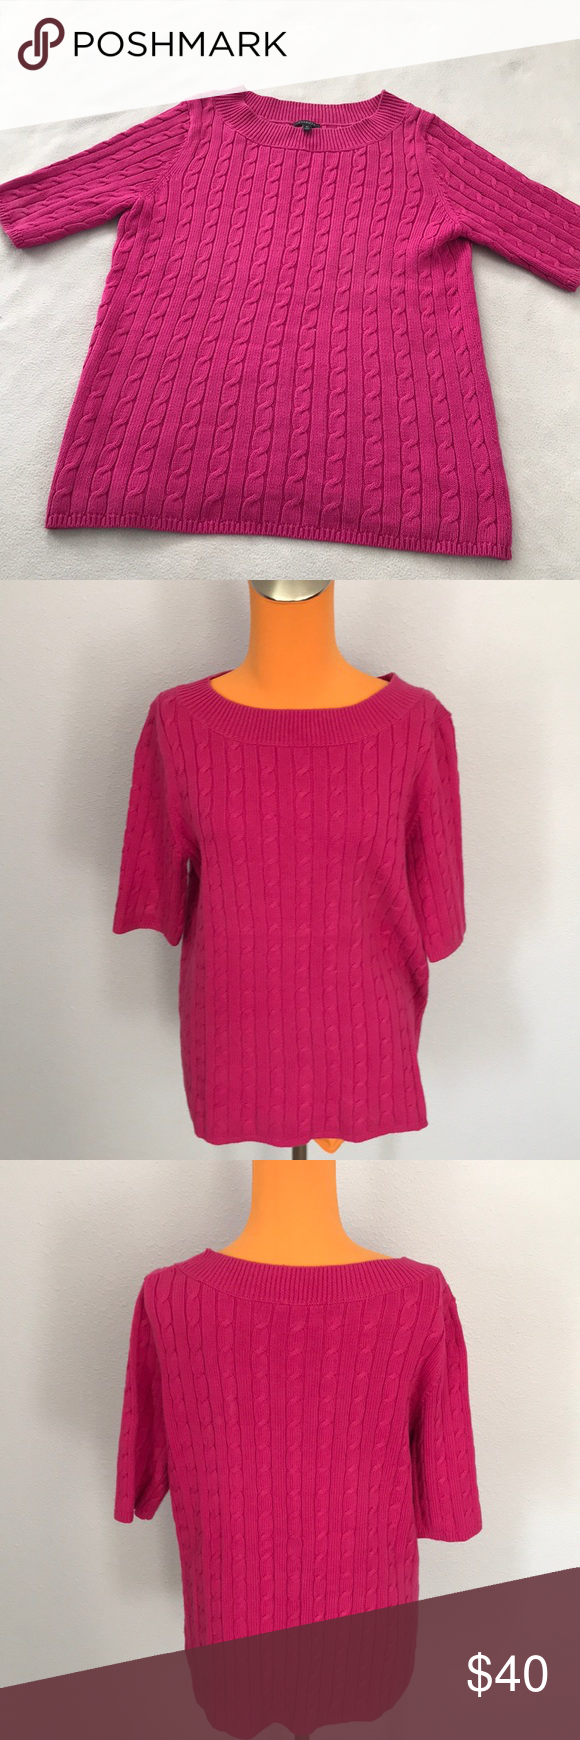 Talbots Hot Pink Short Sleeve Cable Knit Sweater | Hot pink shorts ...